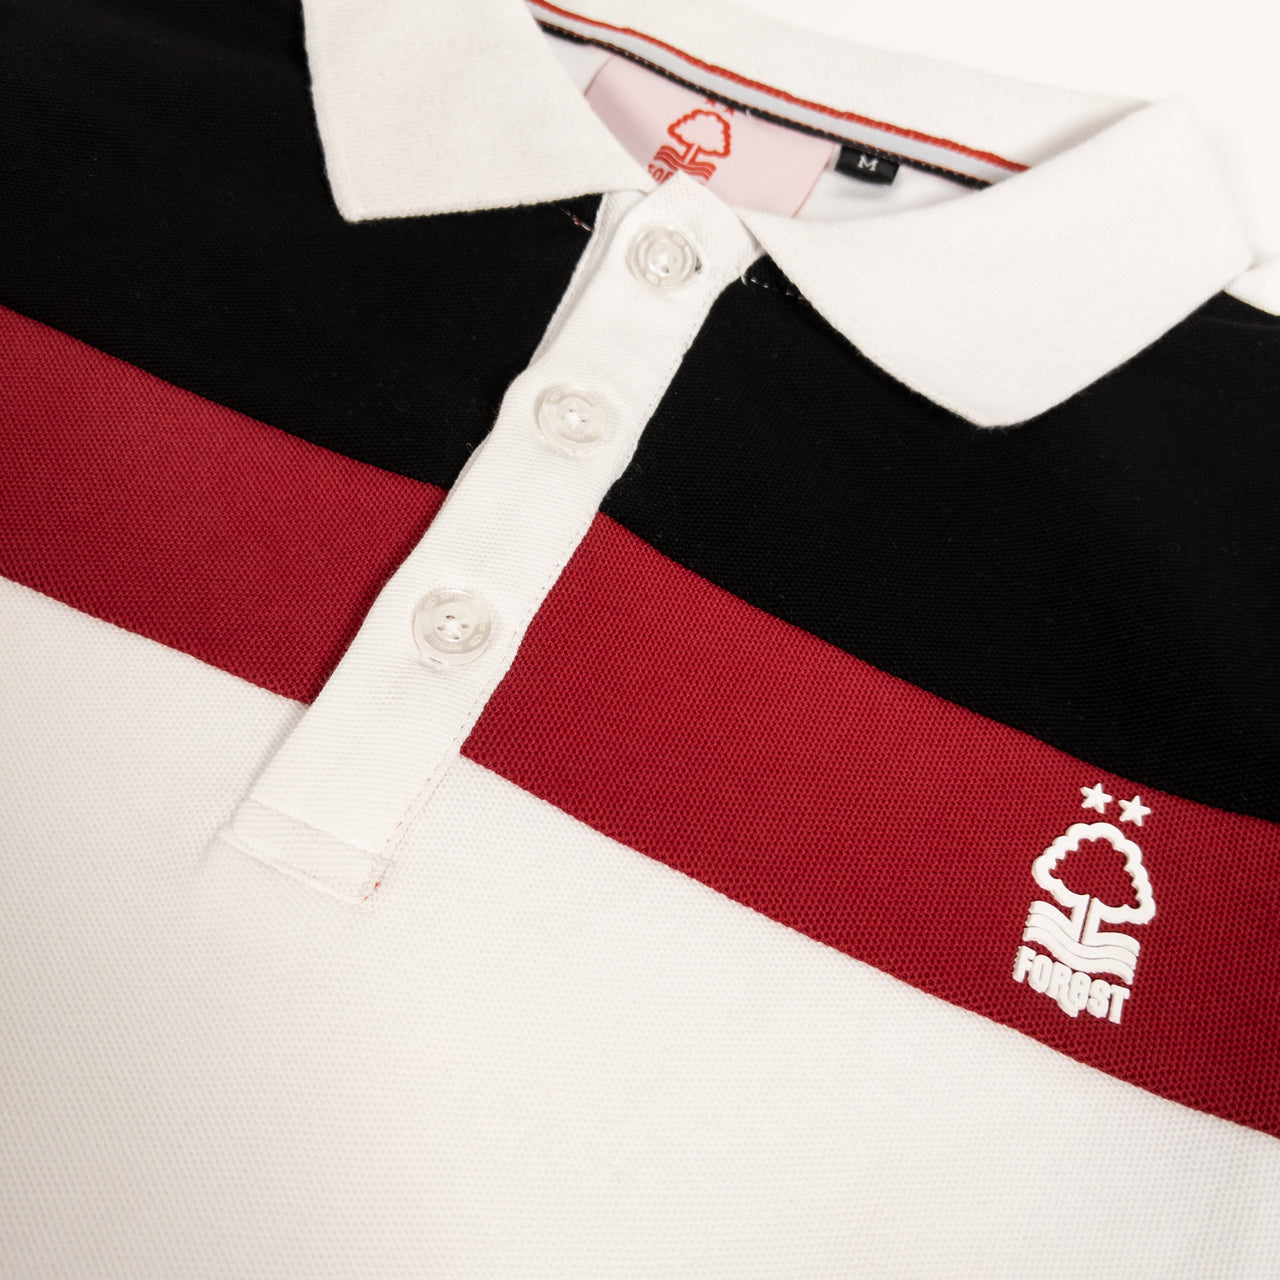 NFFC Mens White 3 Panel Polo